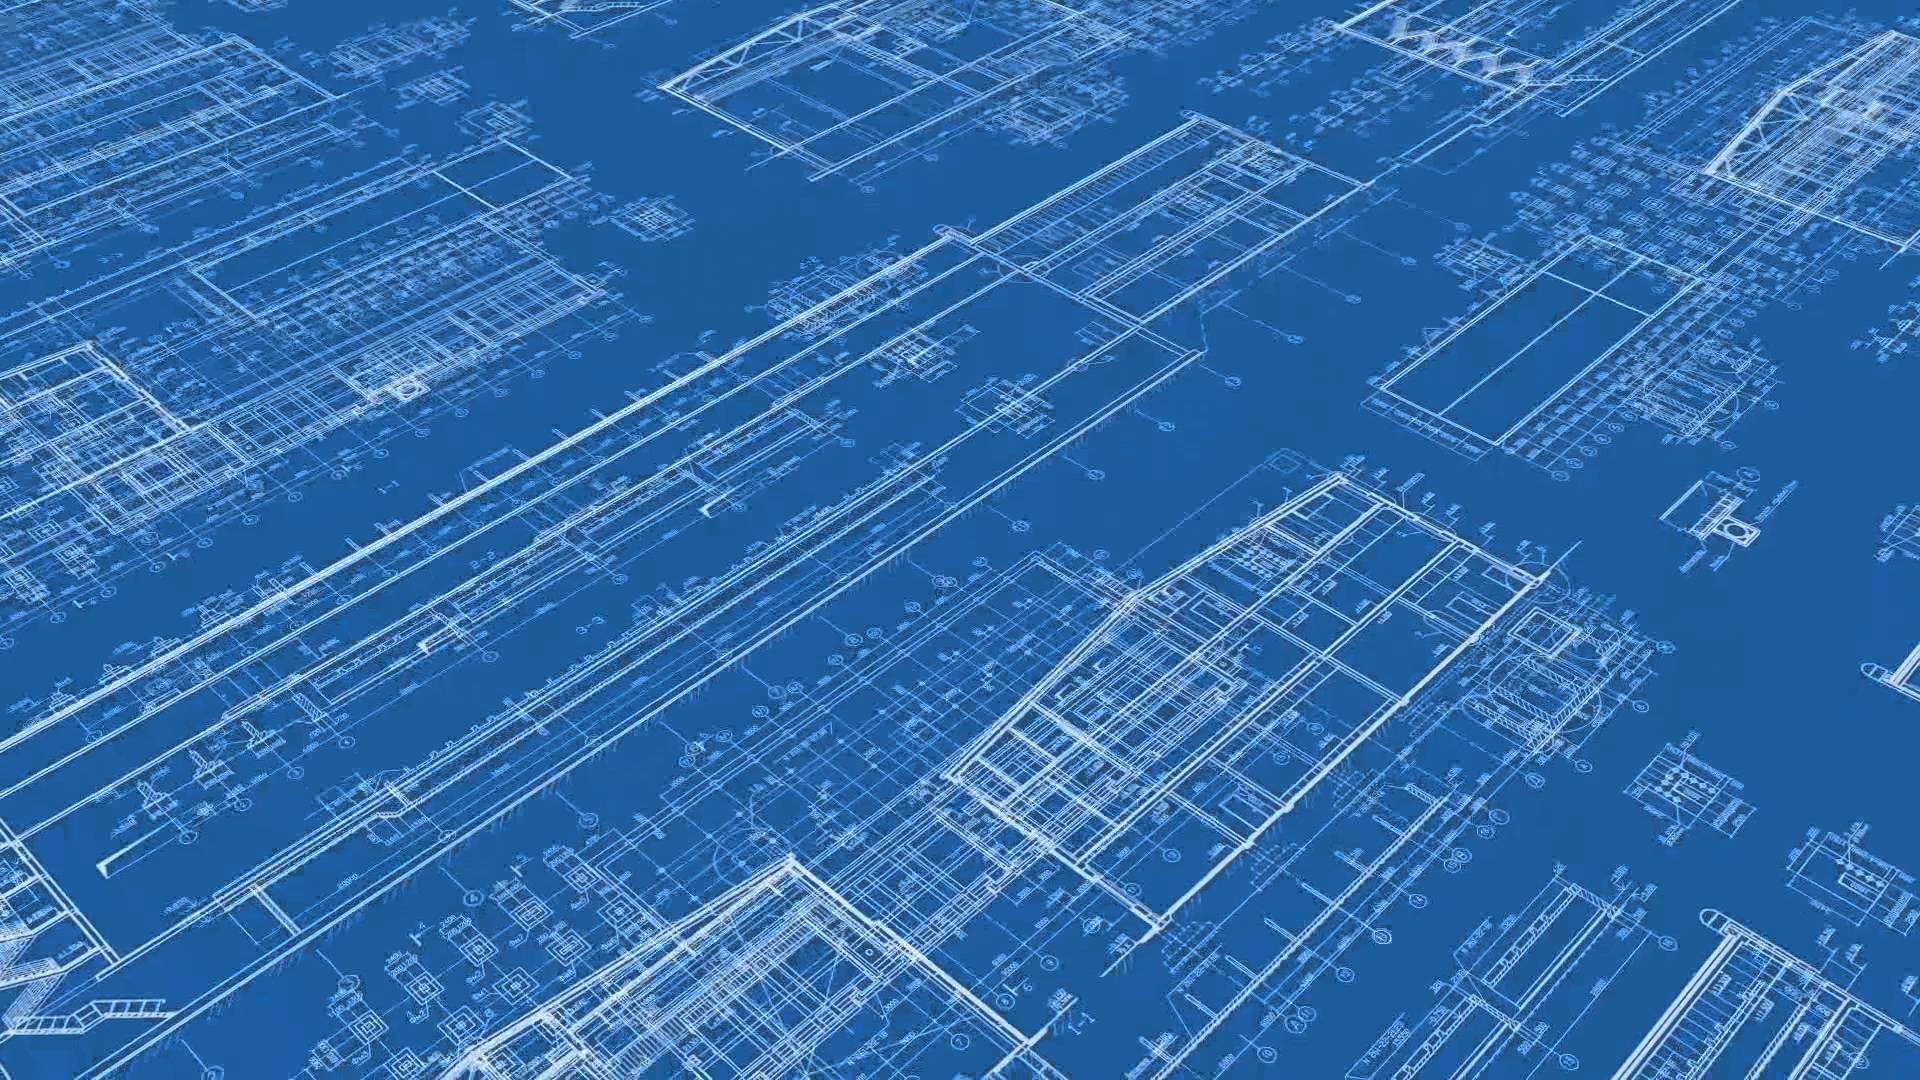 Blueprint background download free cool hd backgrounds for Blueprint builder free